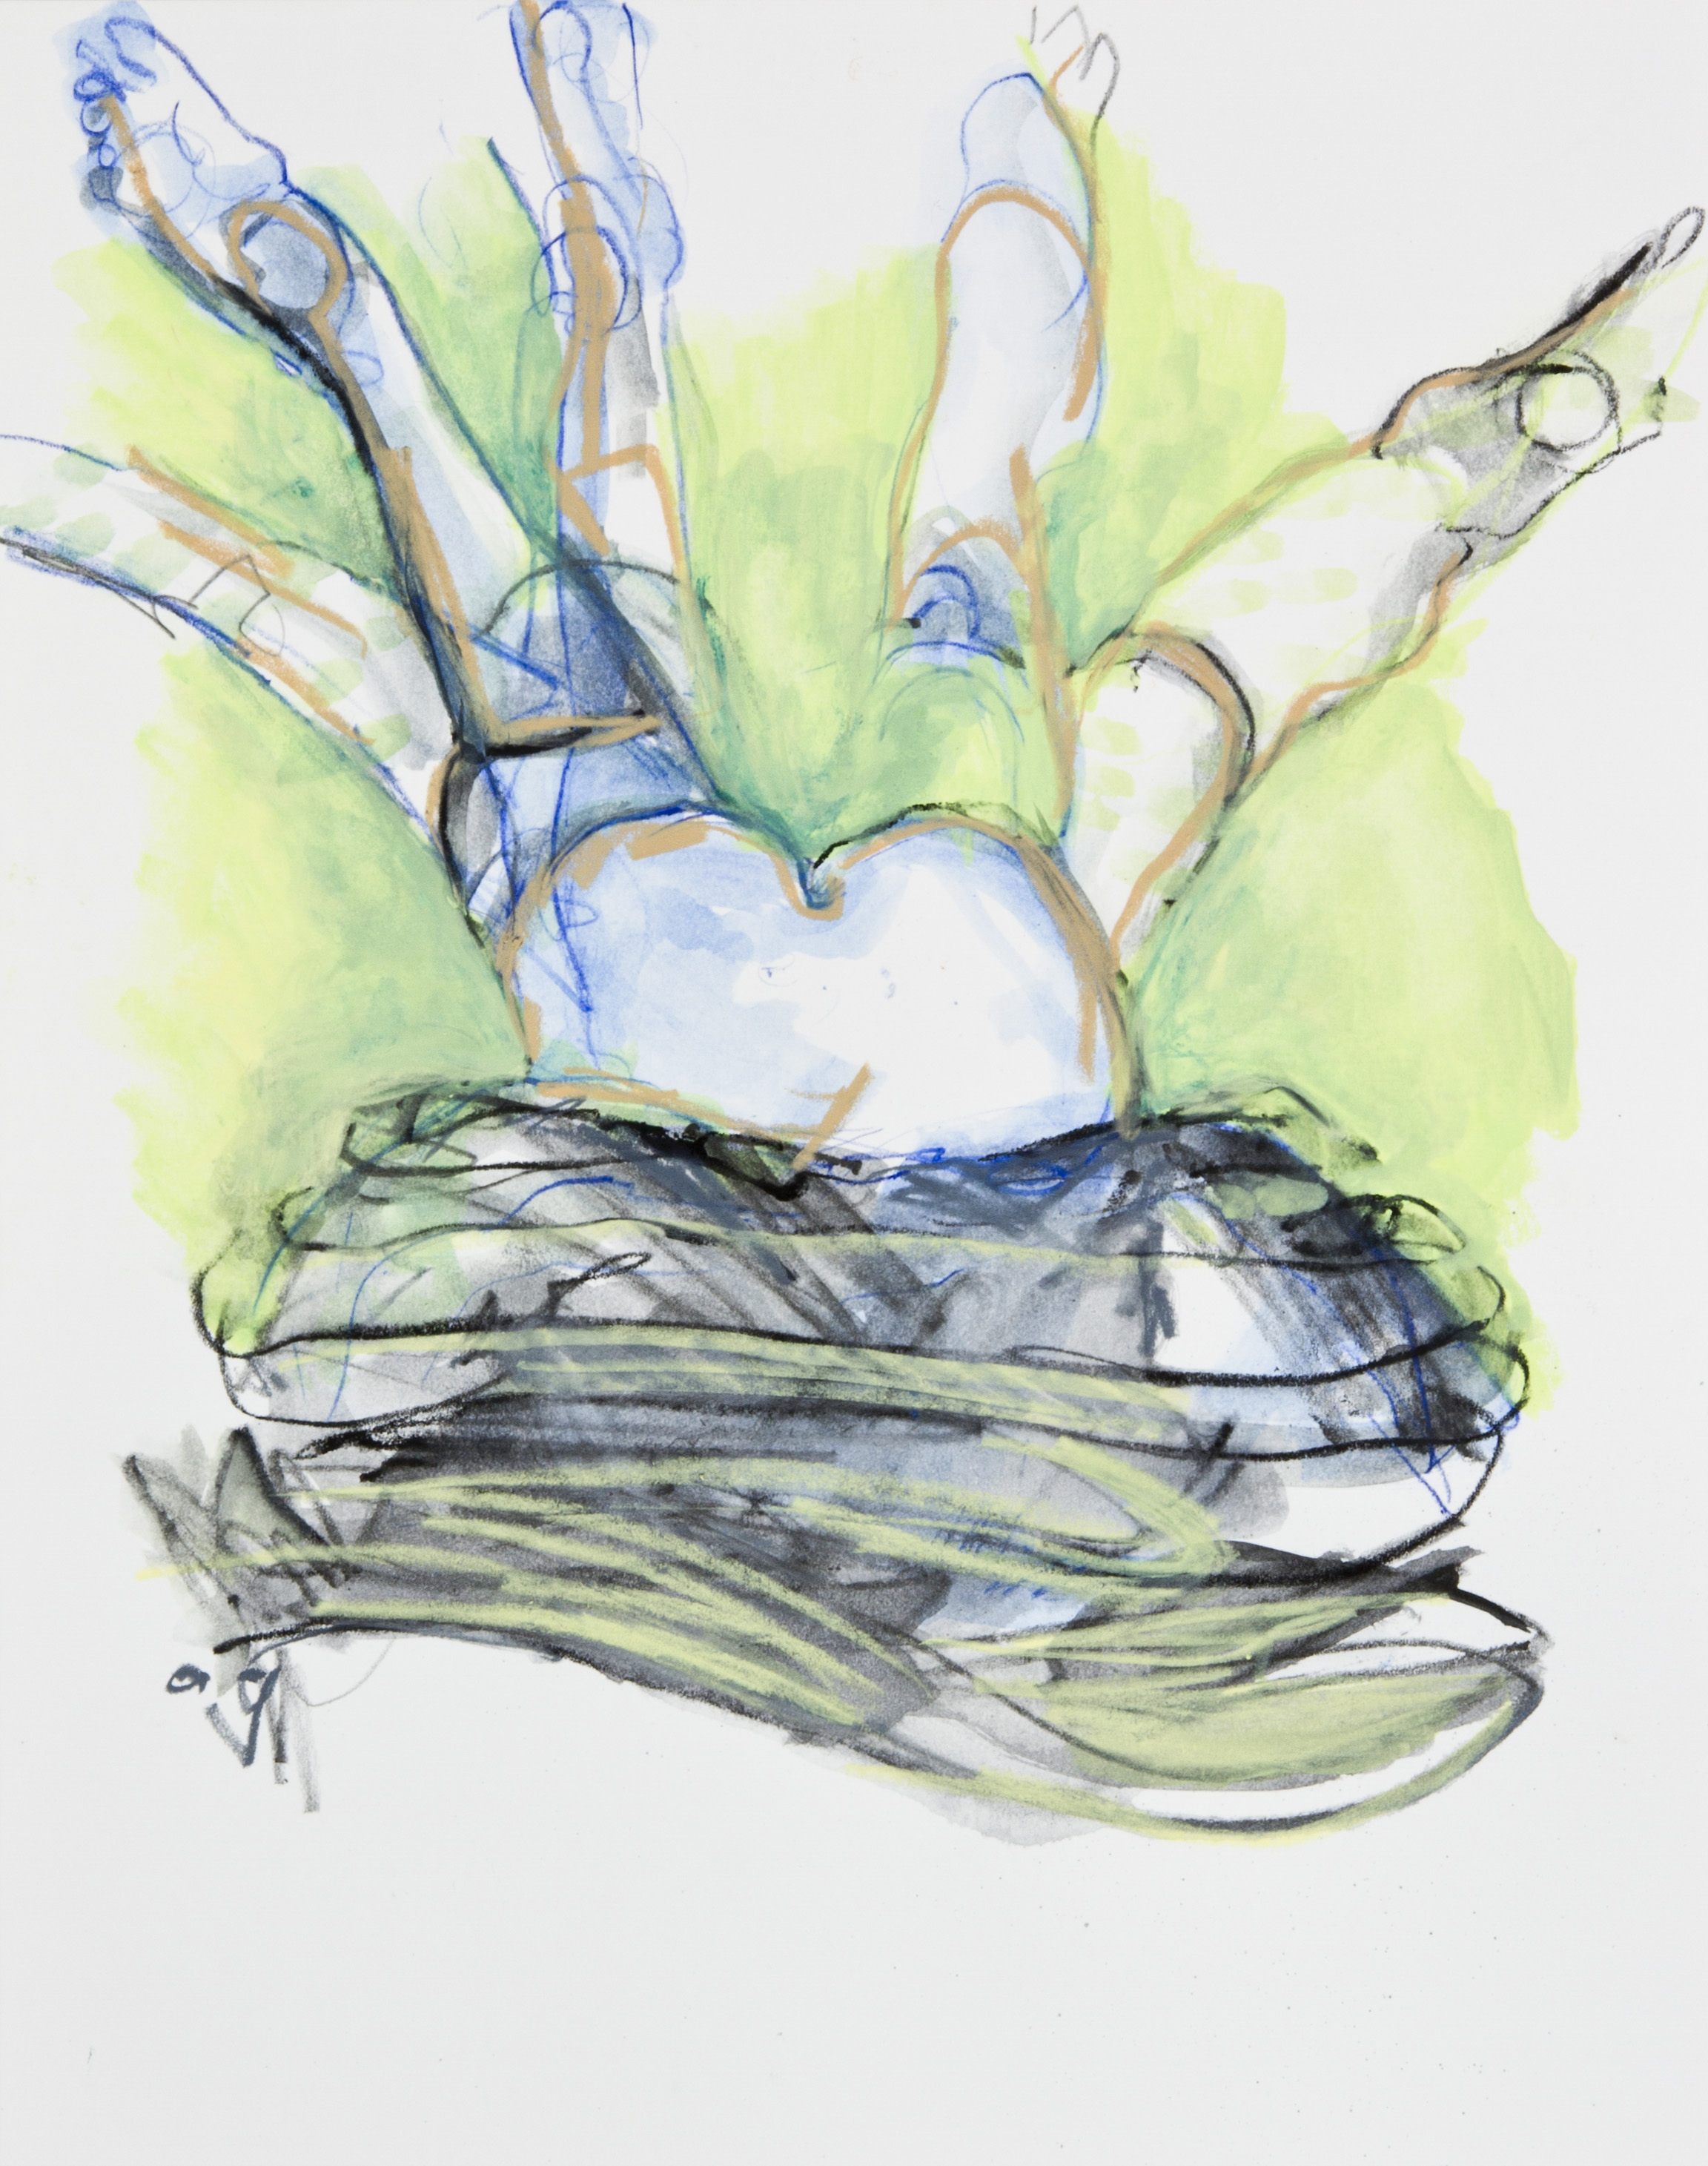 Wriggle Room, 2013, graphite, crayon and watercolor pencil on paper, 11x14 inches